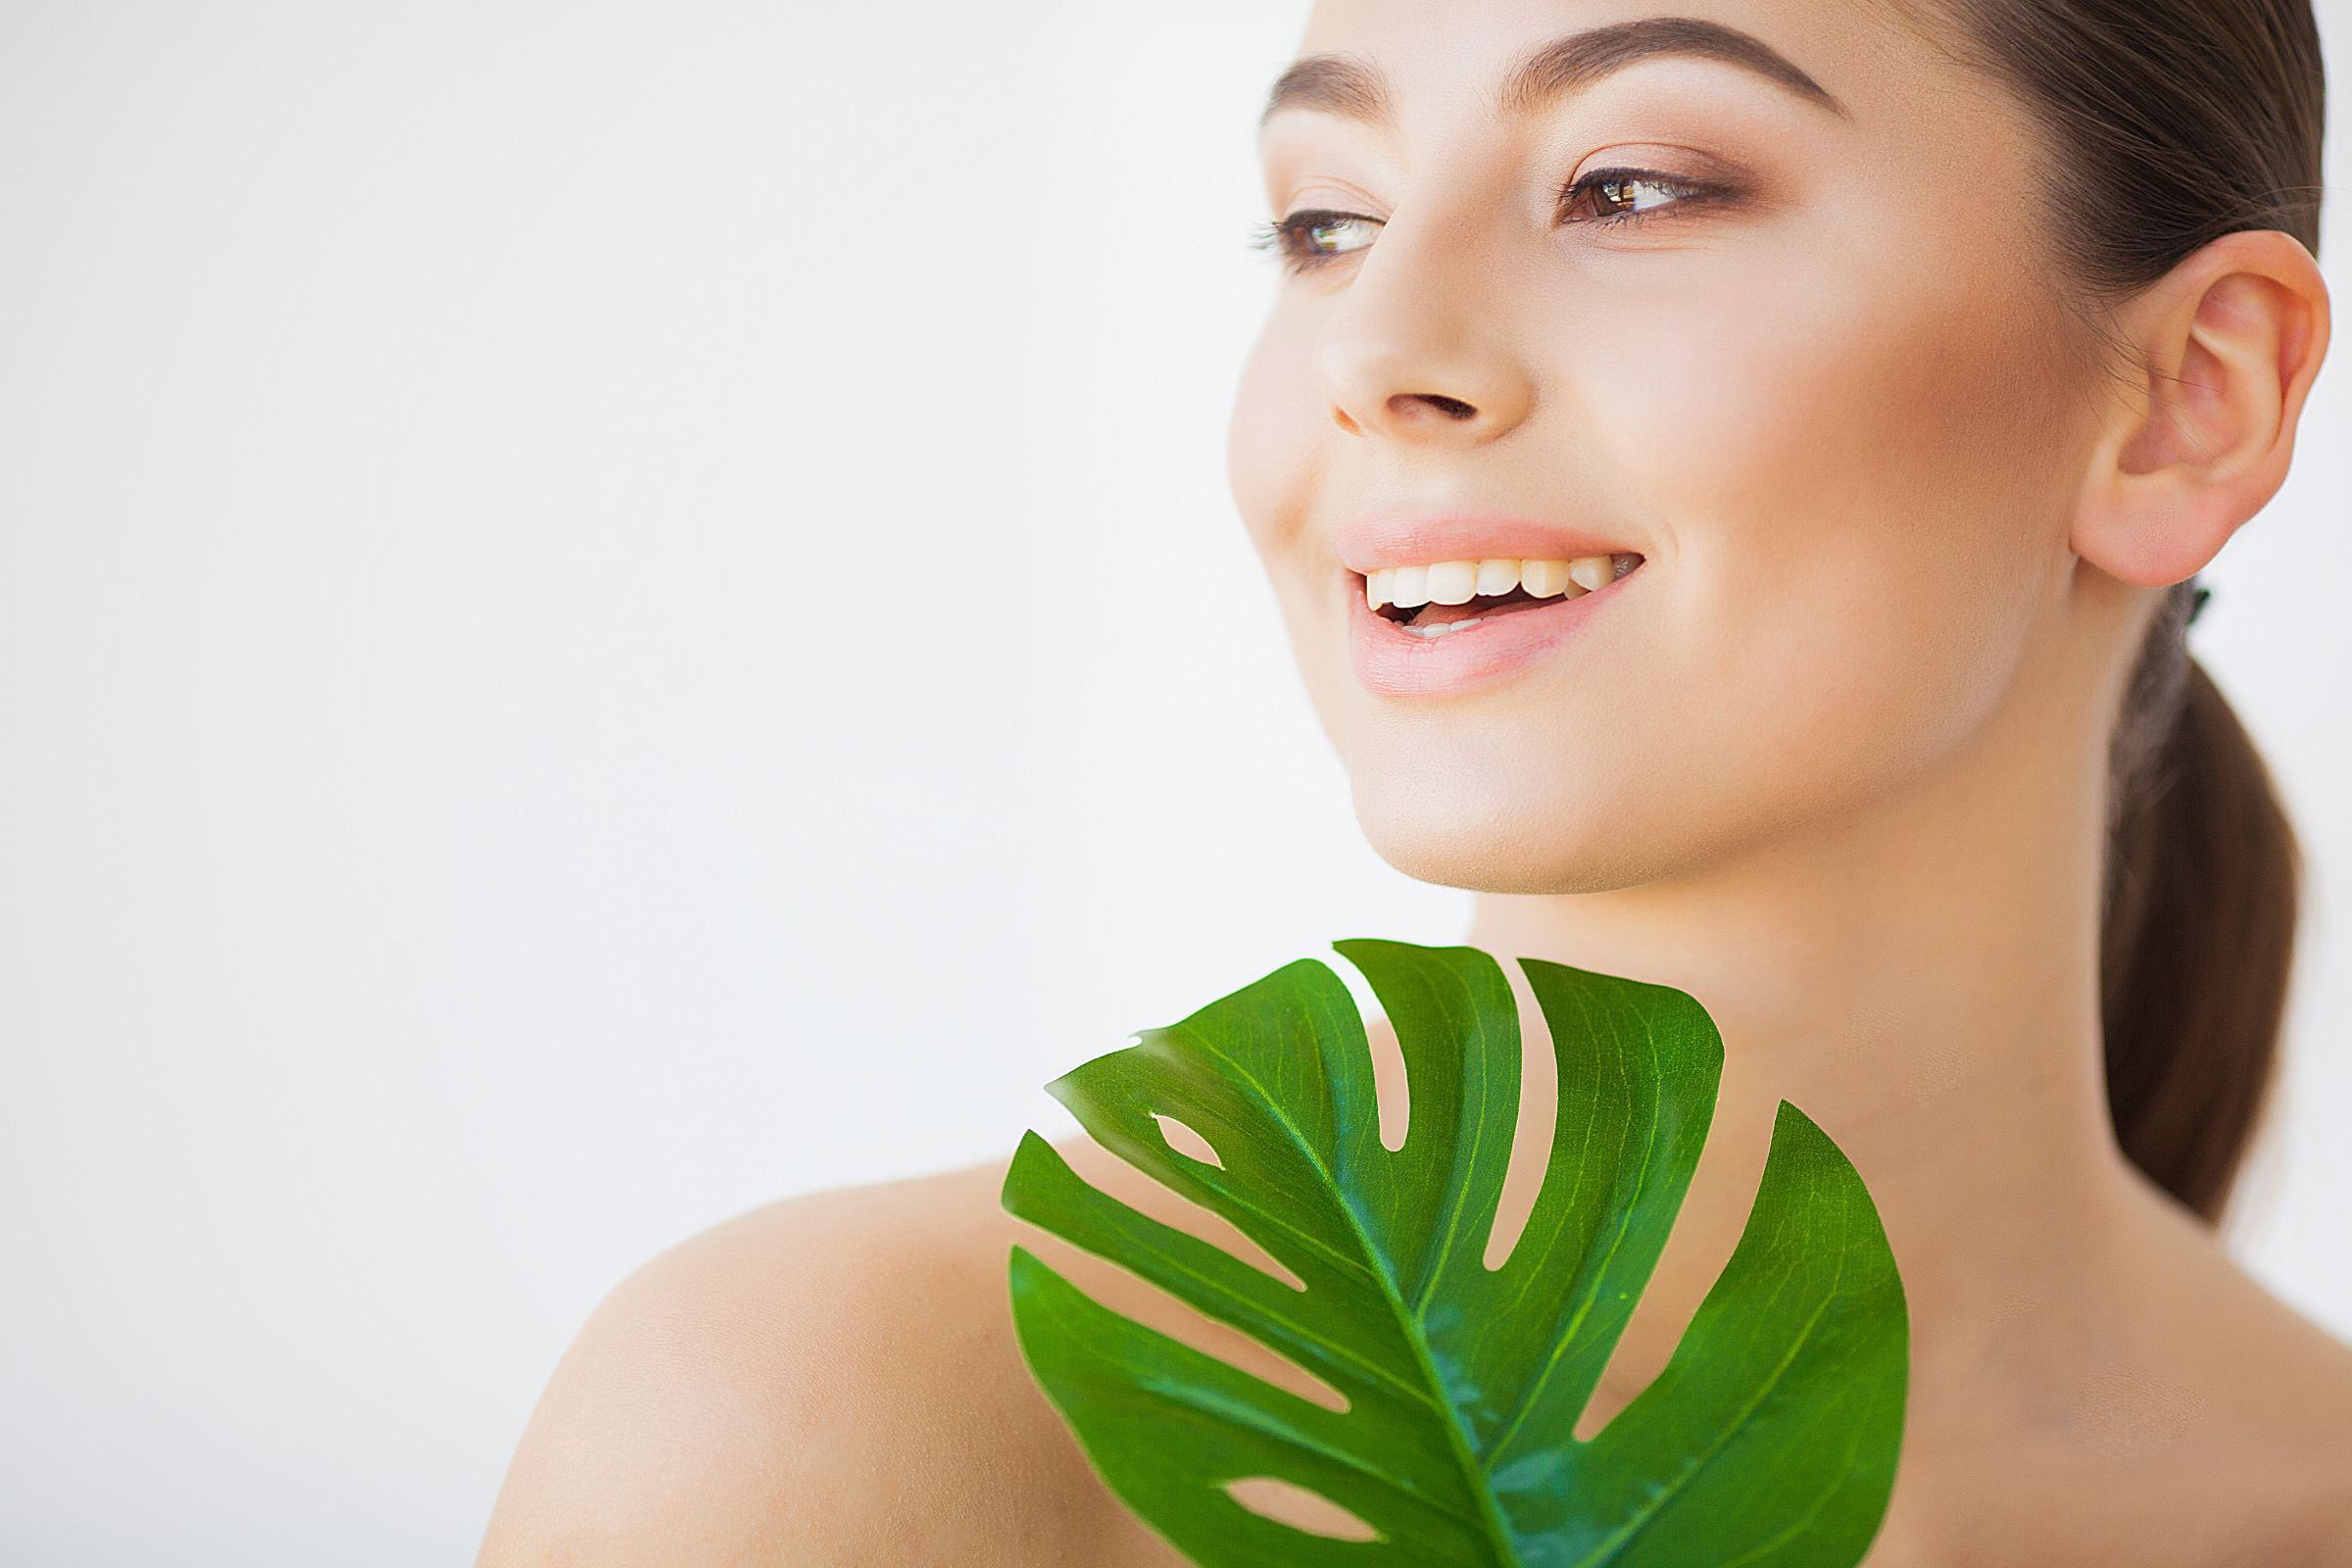 Spa Care Young Pretty Brunette Woman With Big Green Leaf